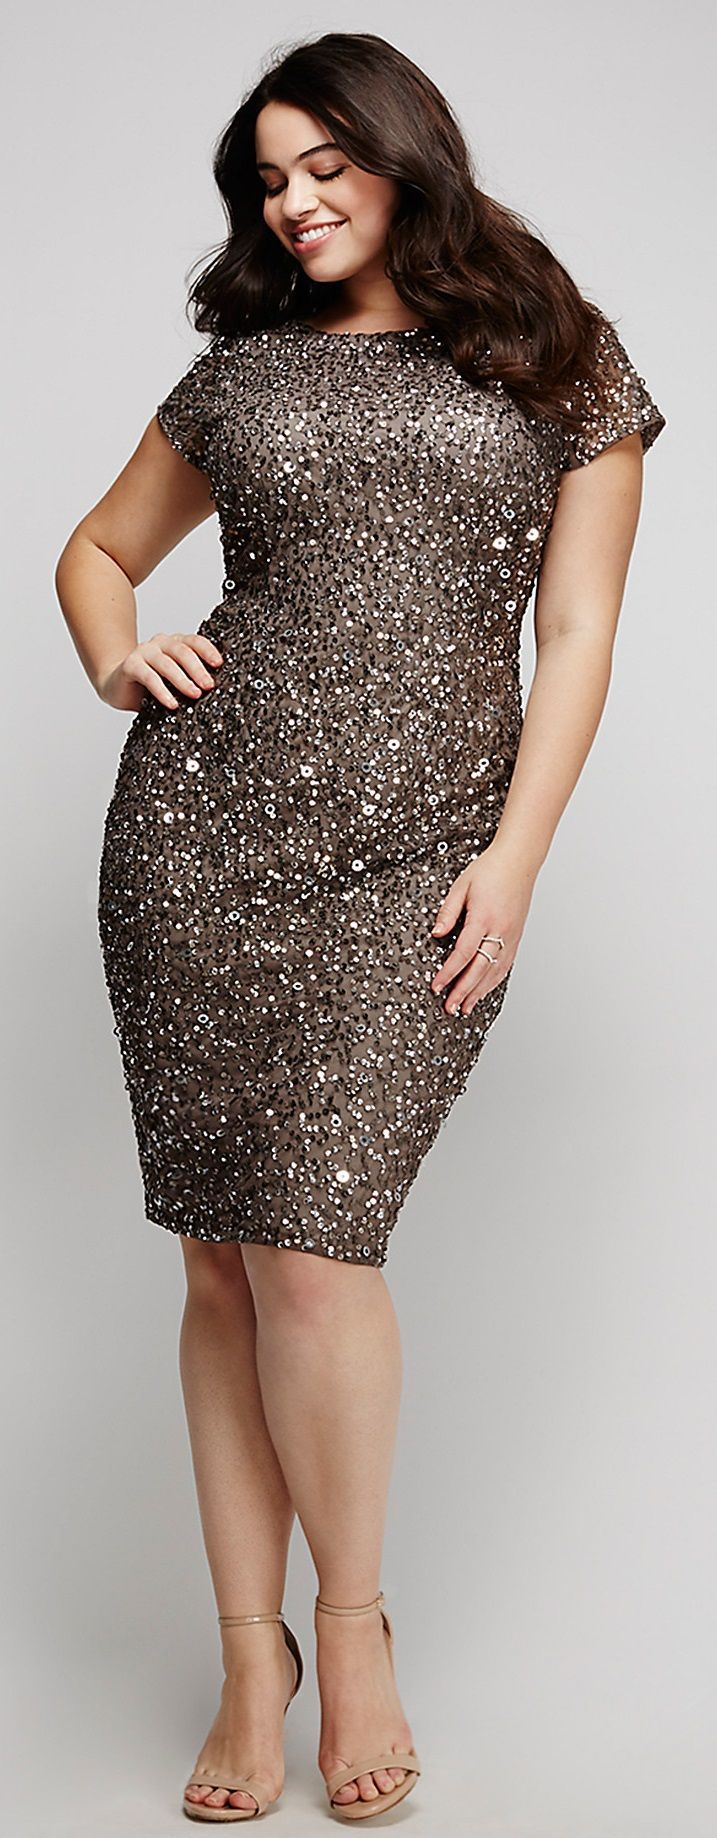 26 best Christmas Party dresses images on Pinterest